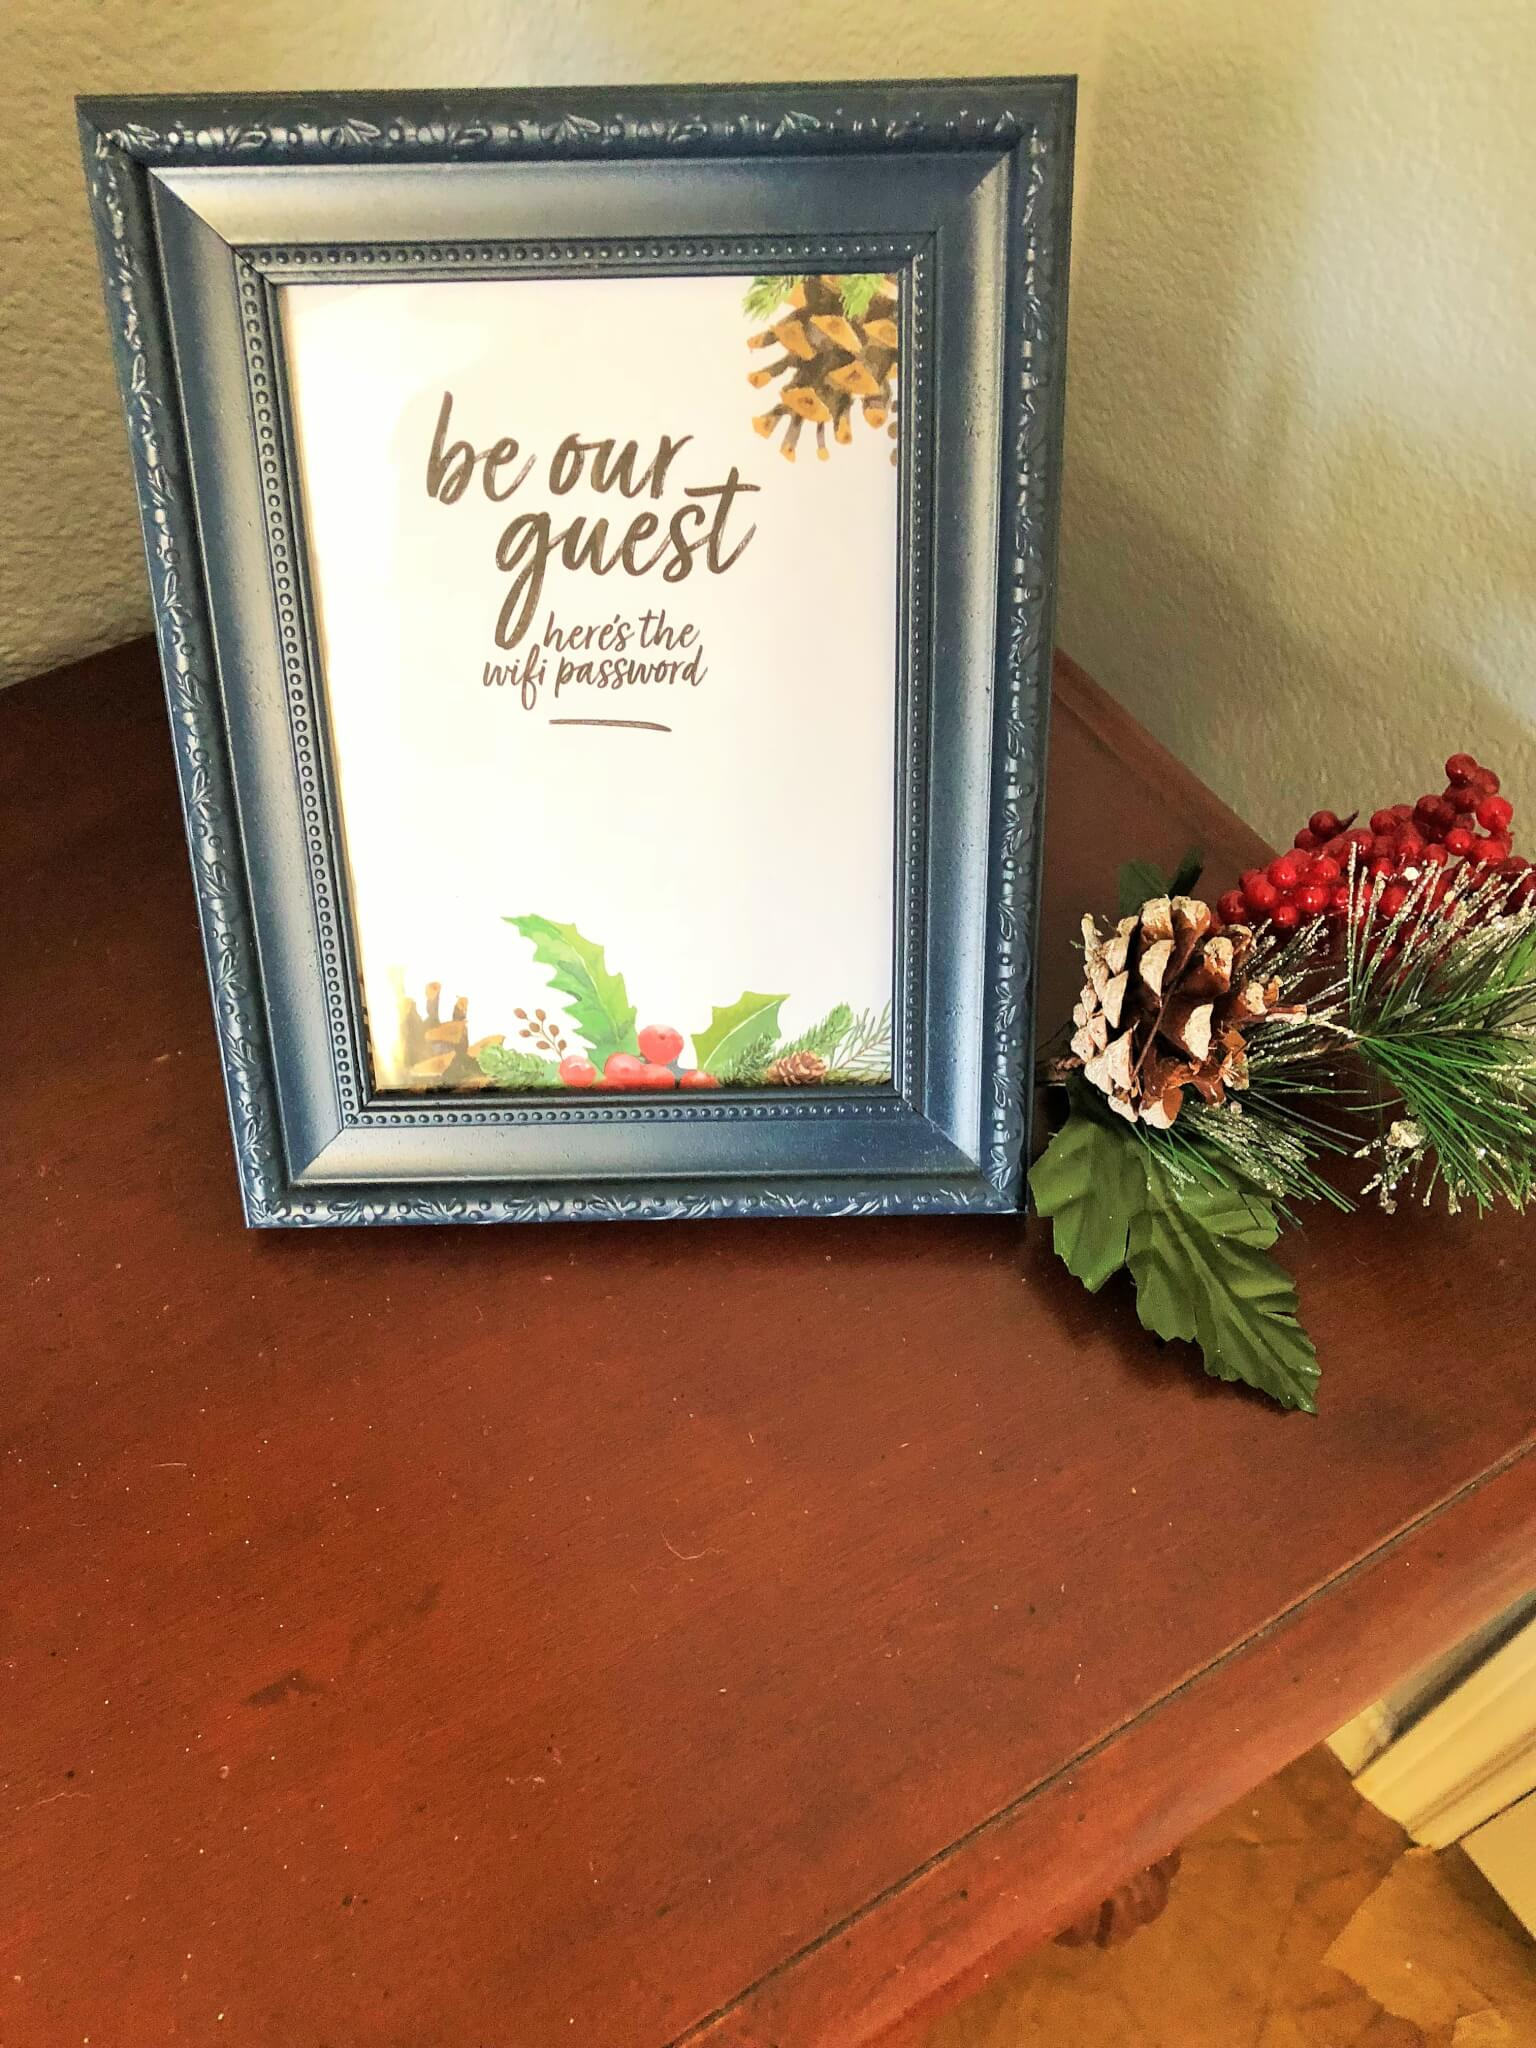 free 5 x 7 holiday wifi password sign